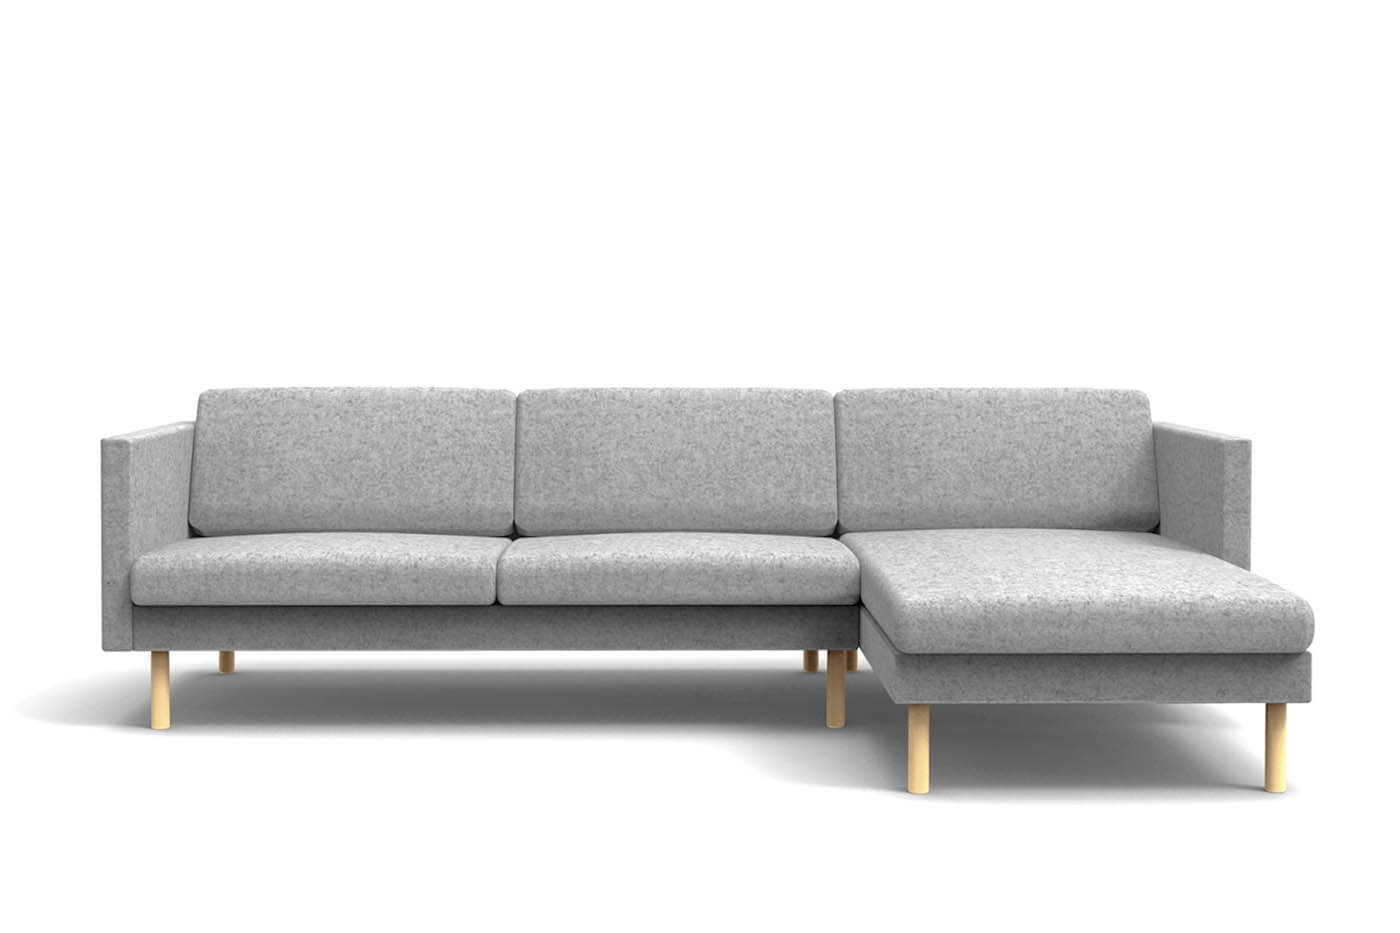 2017 Leaf Sofa Chaise Lounge Left – Oot Oot Studio With Chaise Lounge Couches (View 1 of 15)